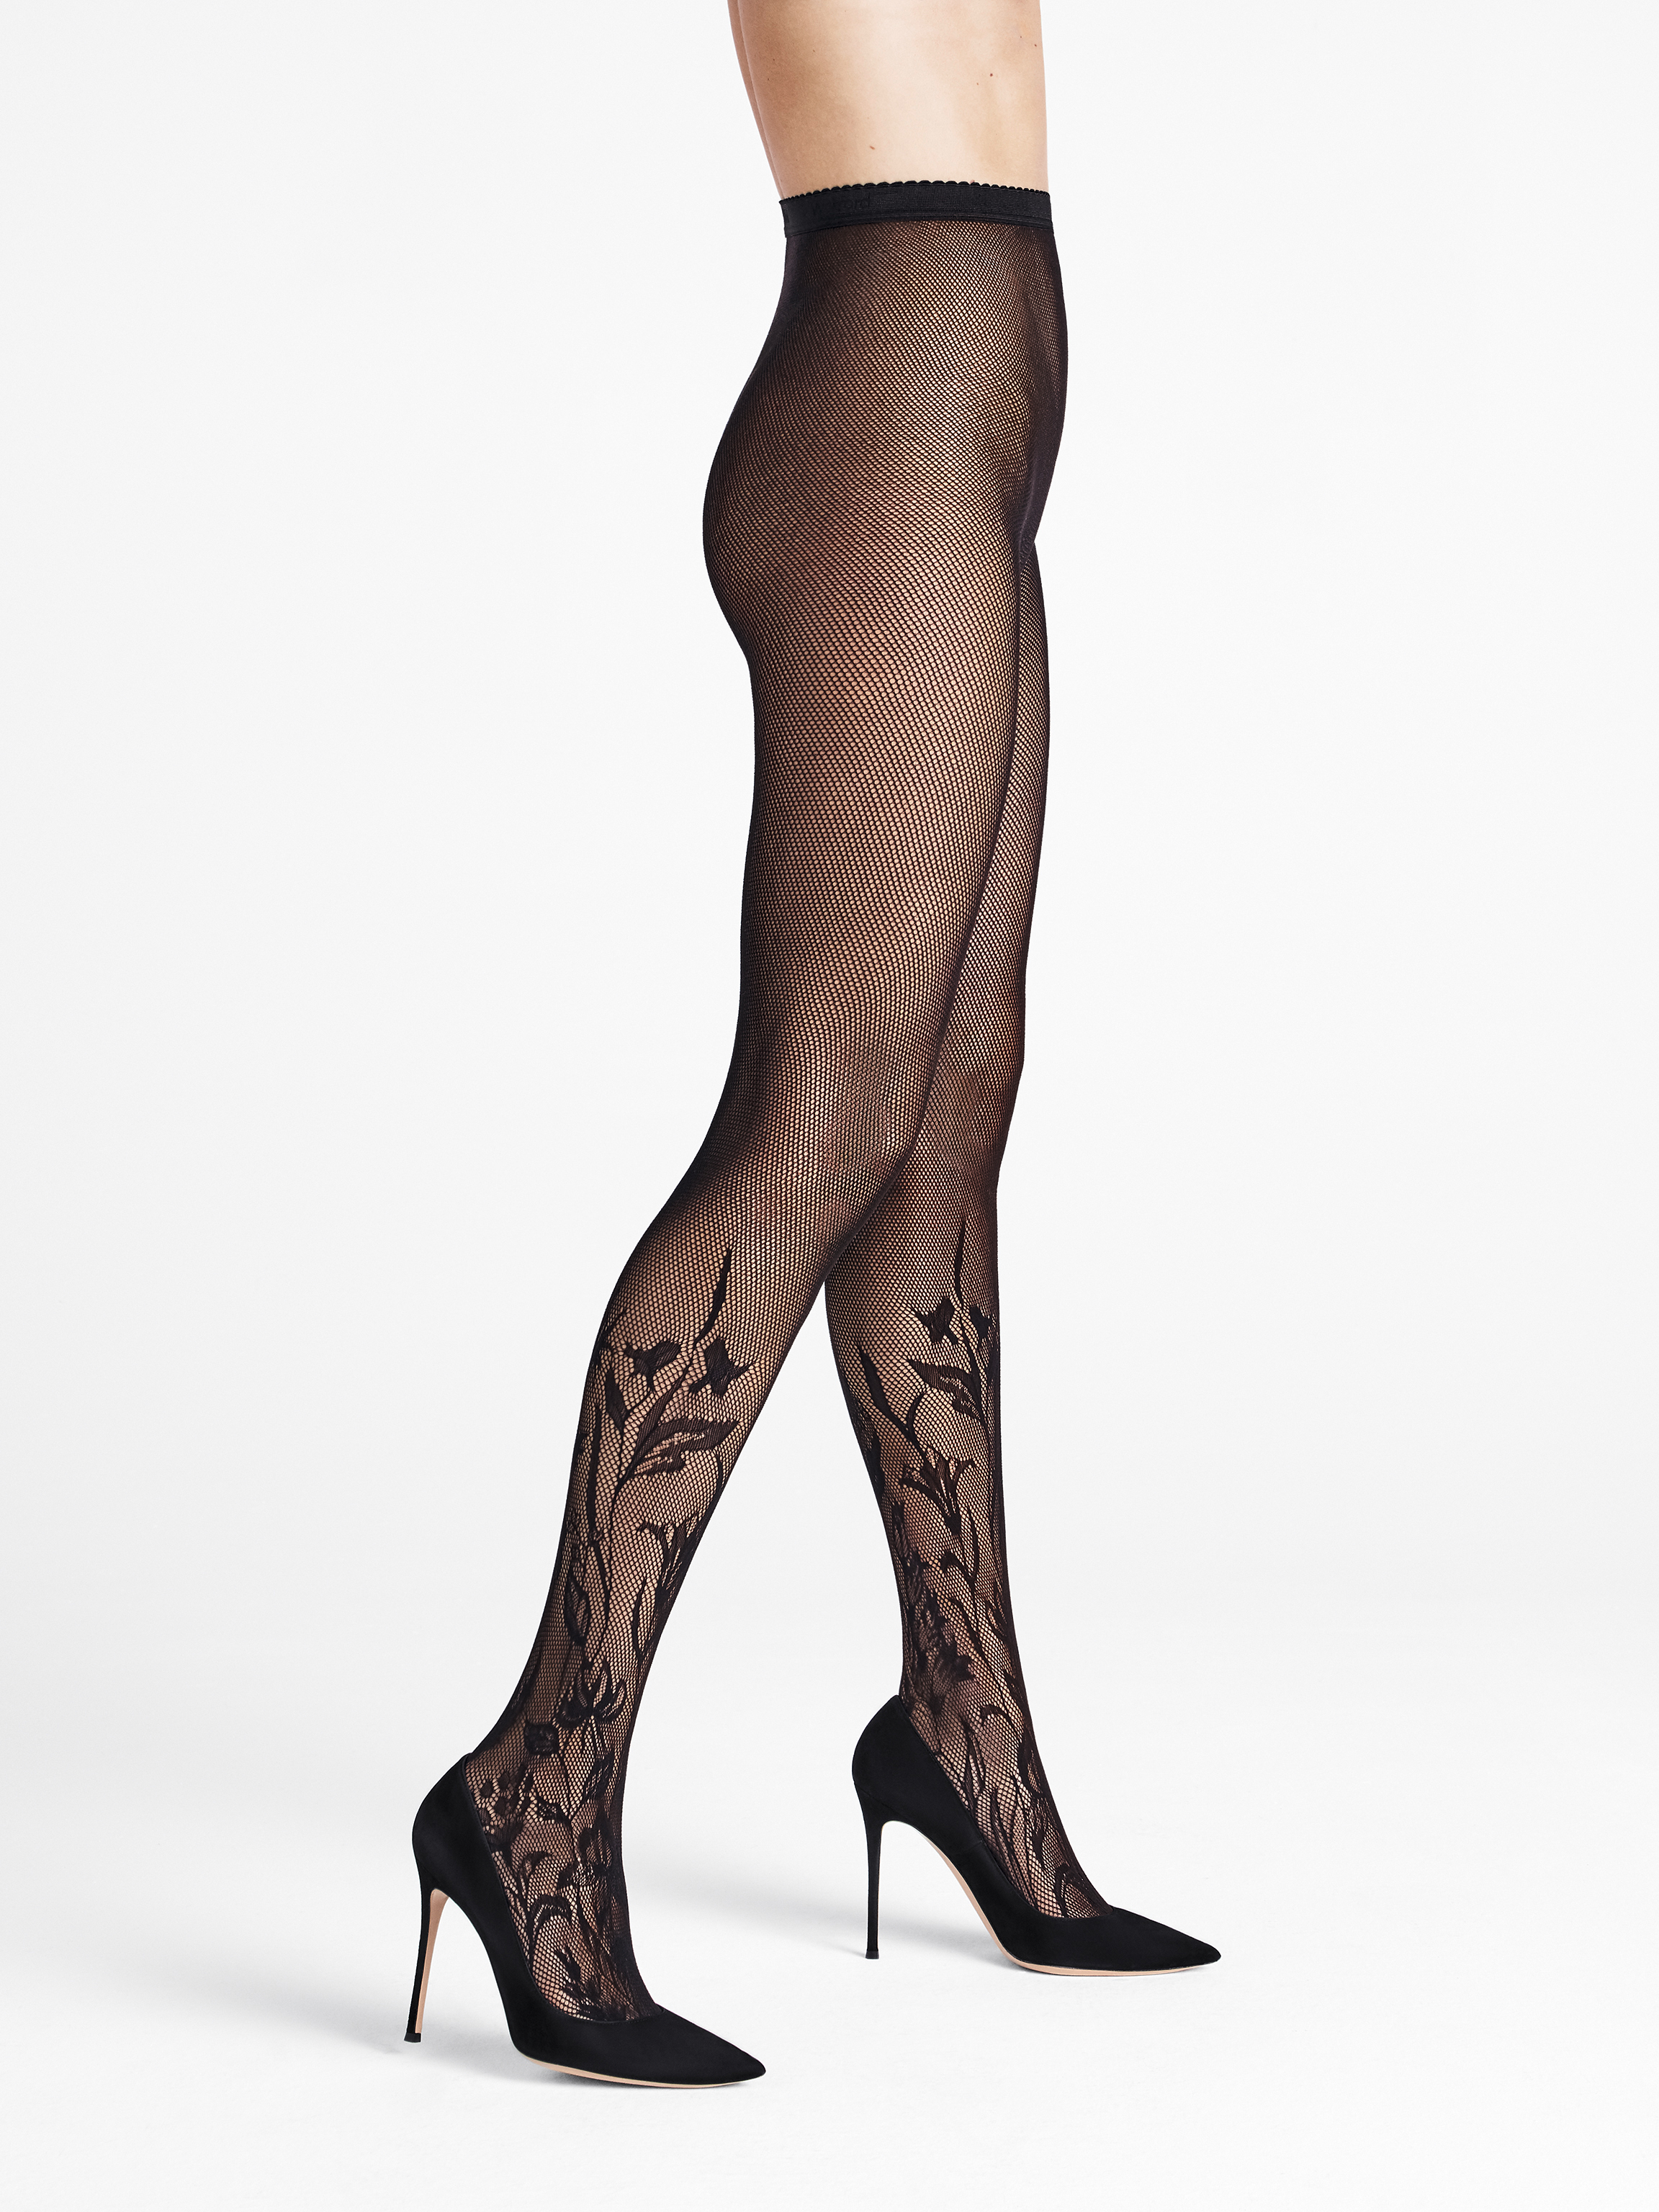 Wildflower Net Tights - 7005 - L | Sportbekleidung > Sporthosen > Tights | Wolford